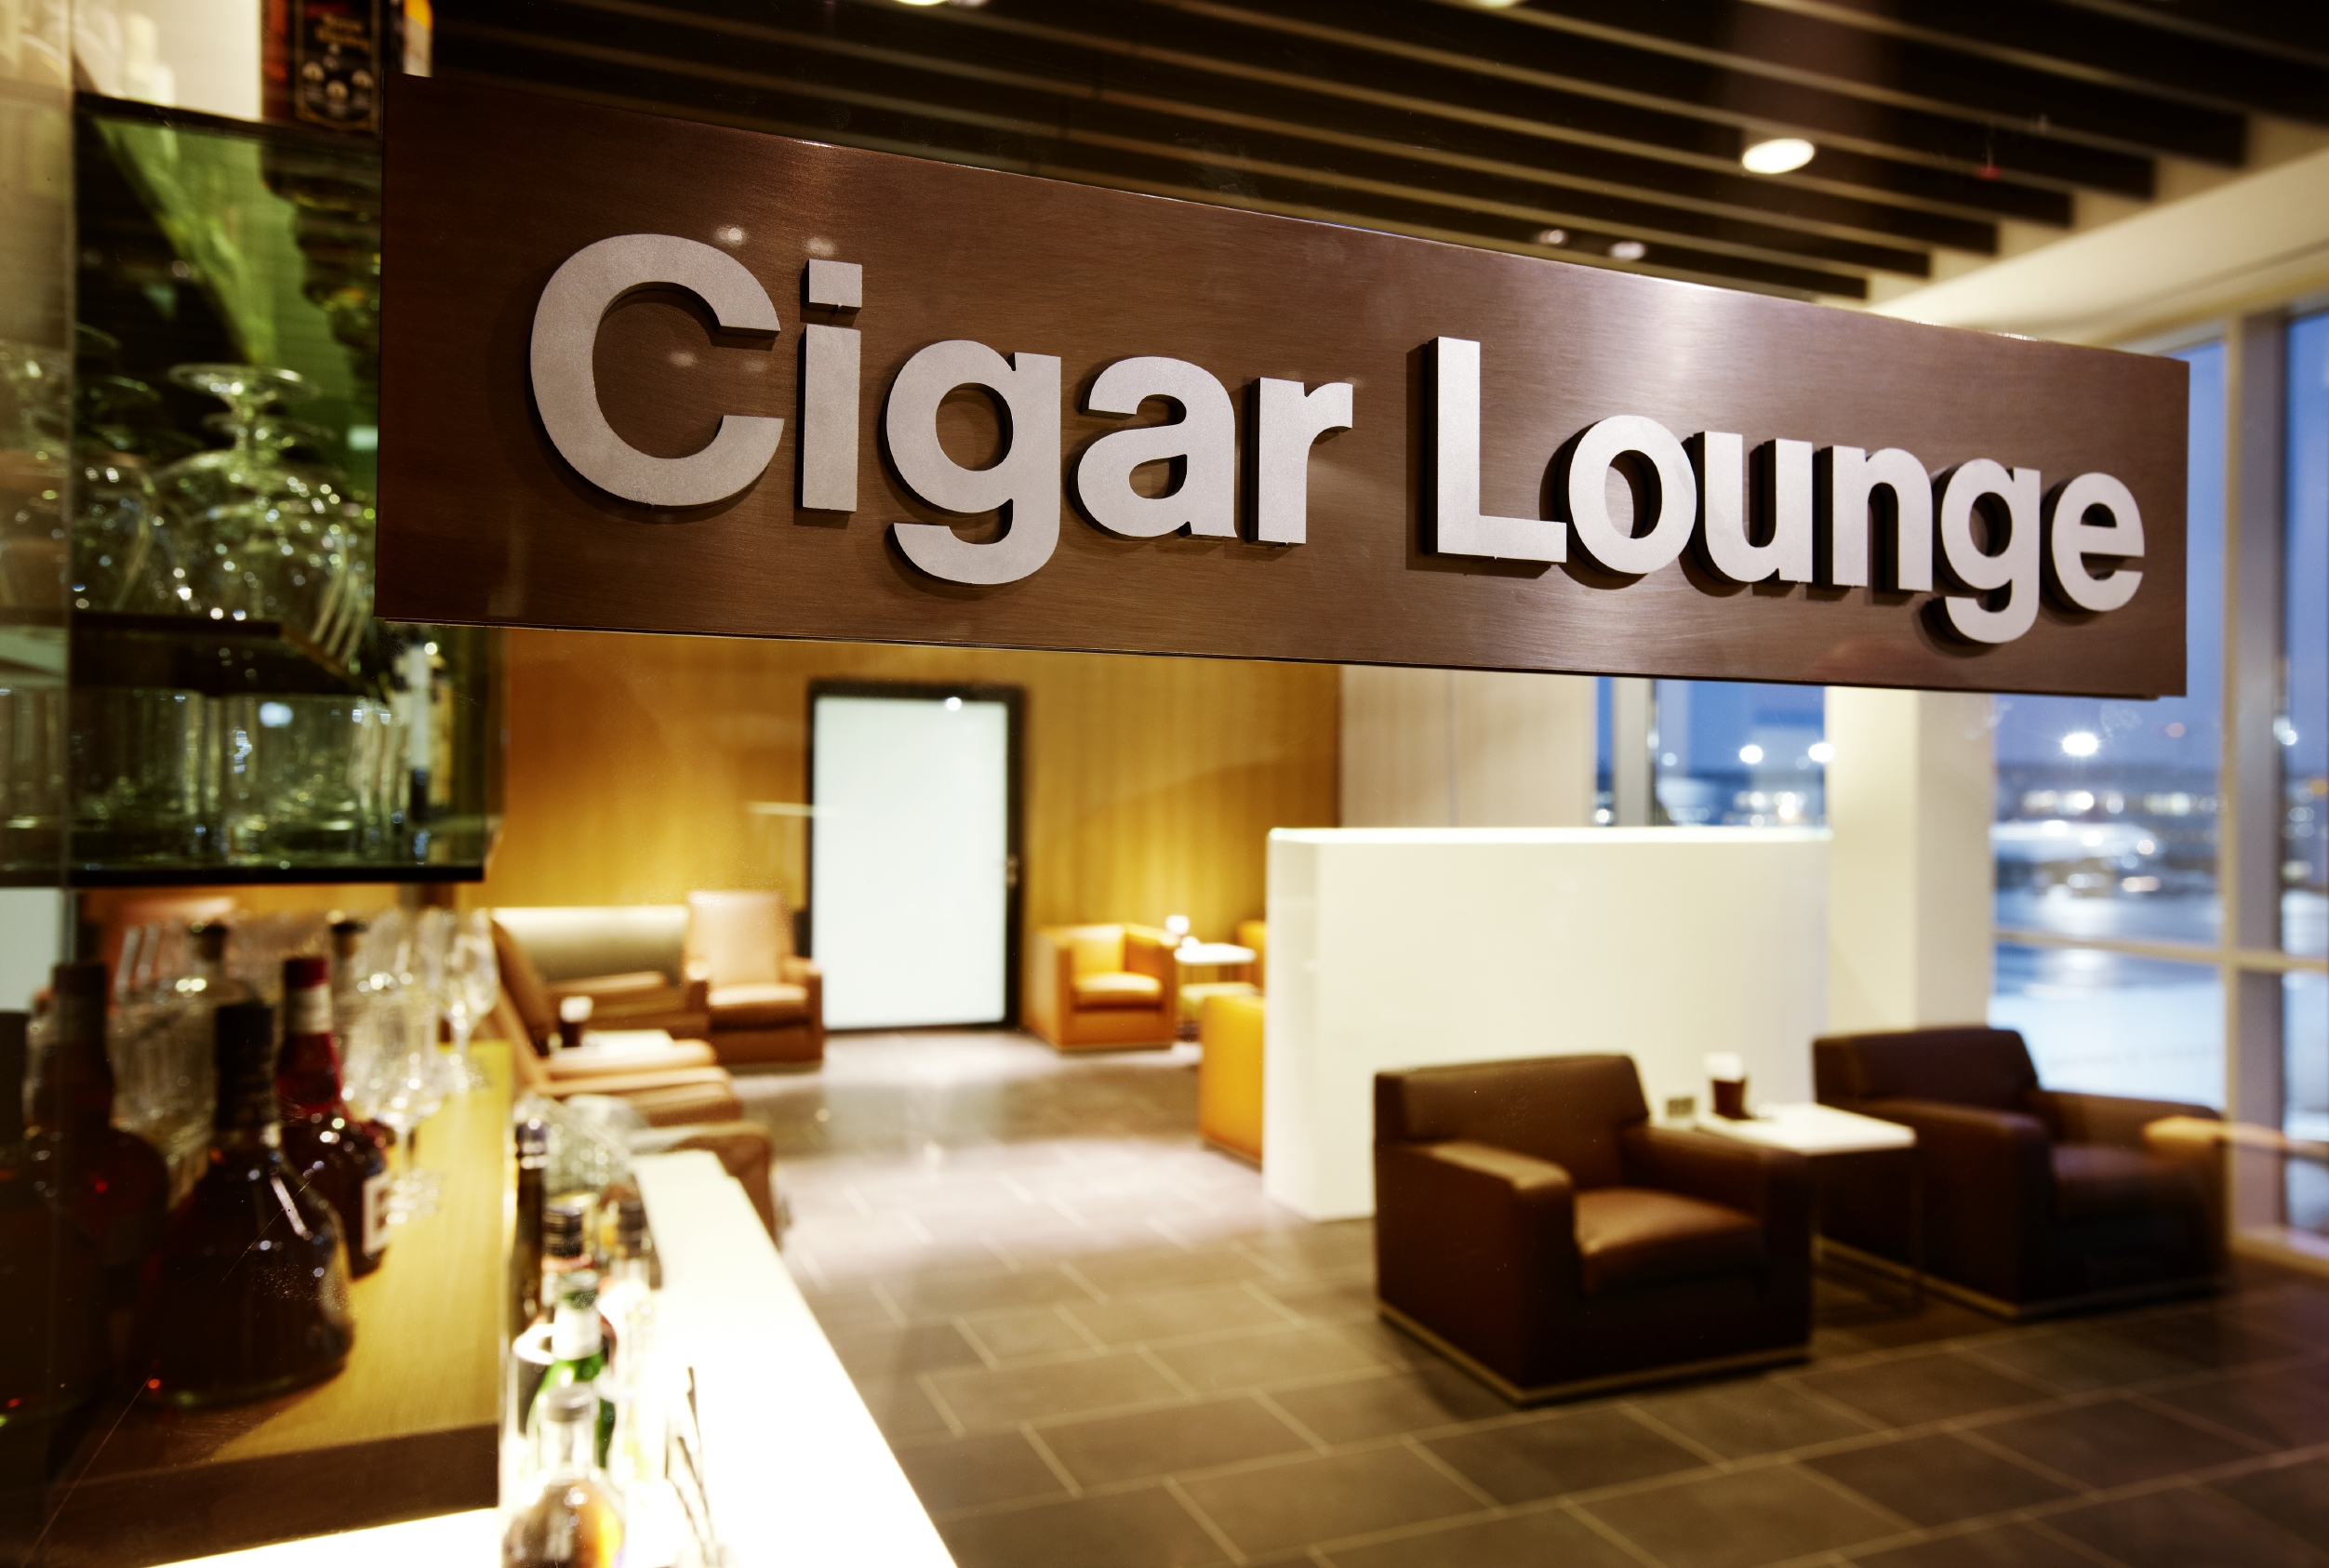 Cigar Lounge in Lufthansa First Class Area